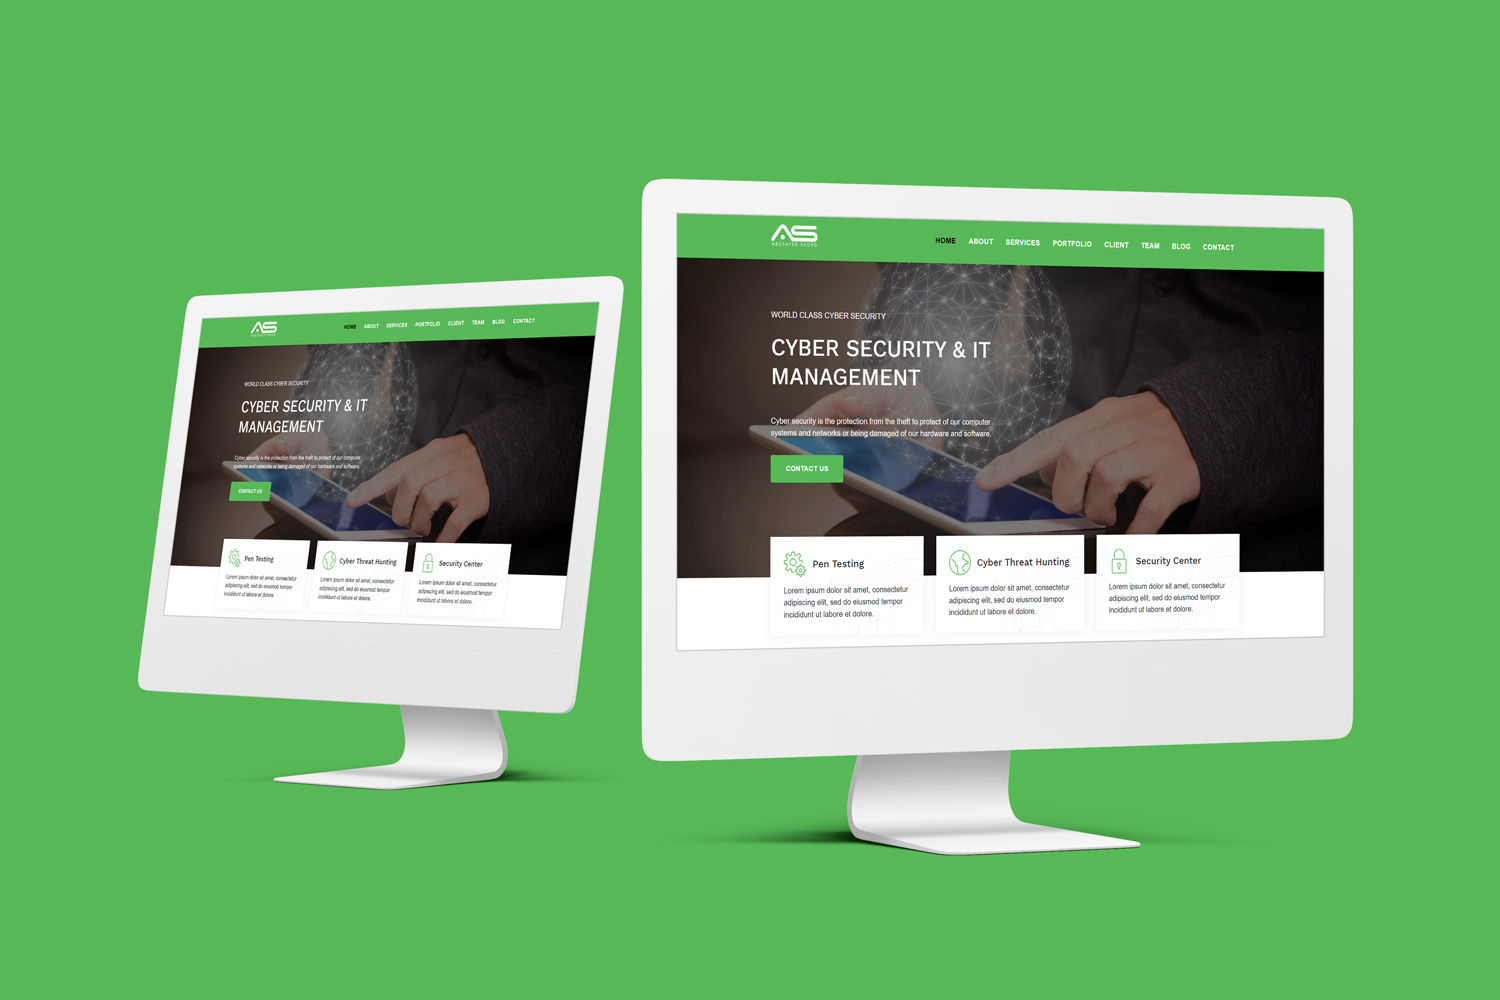 Shuvo- Cyber Security Company Landing Page Template